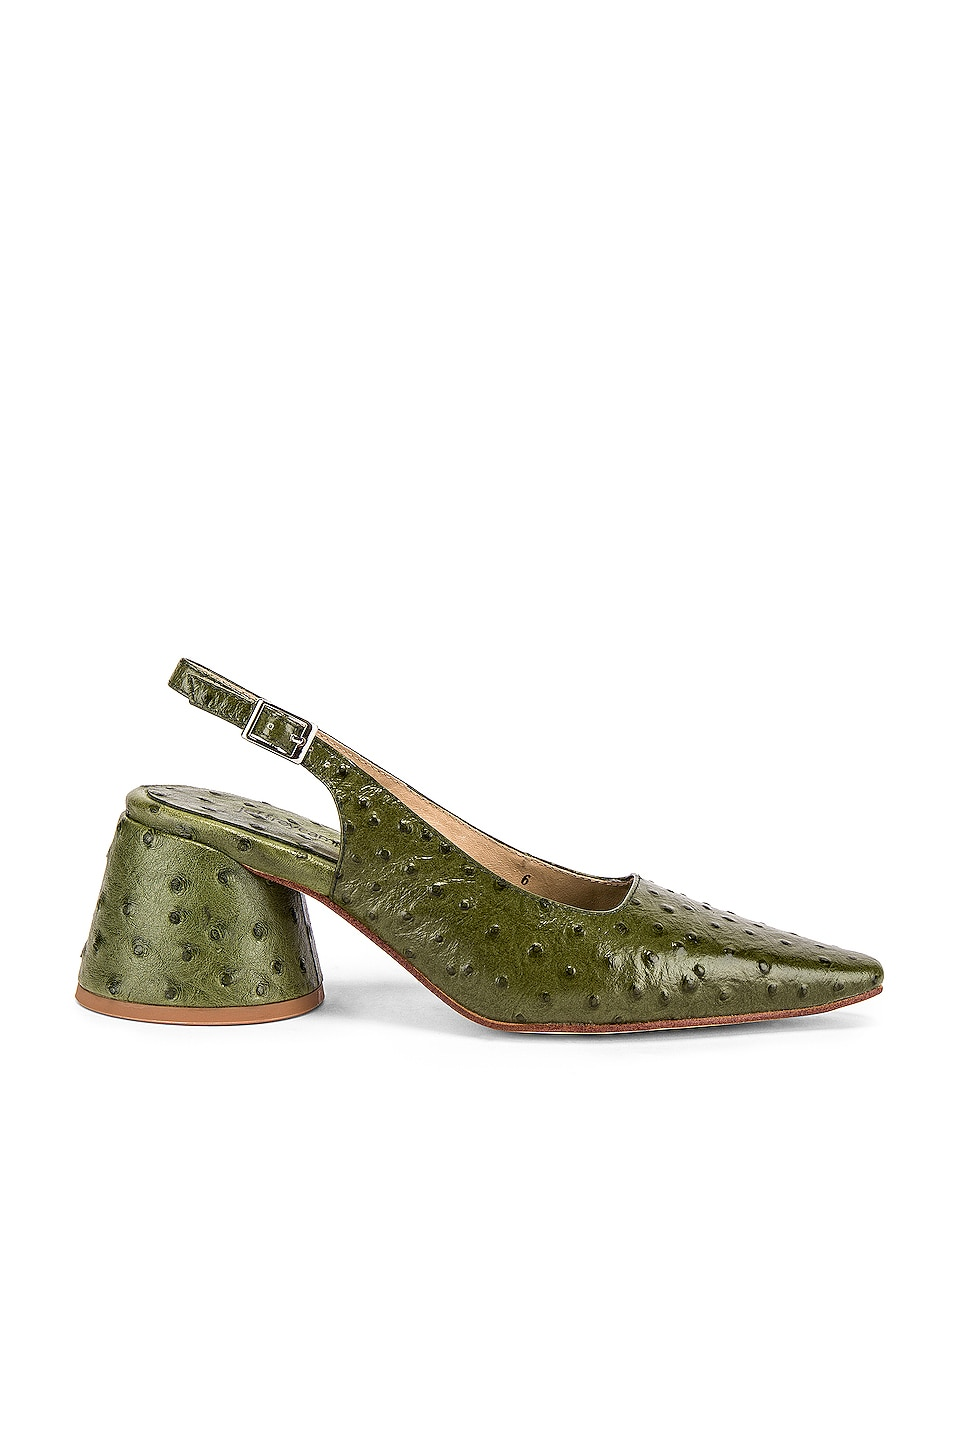 Jeffrey Campbell Ferra Pump in Green Ostrich